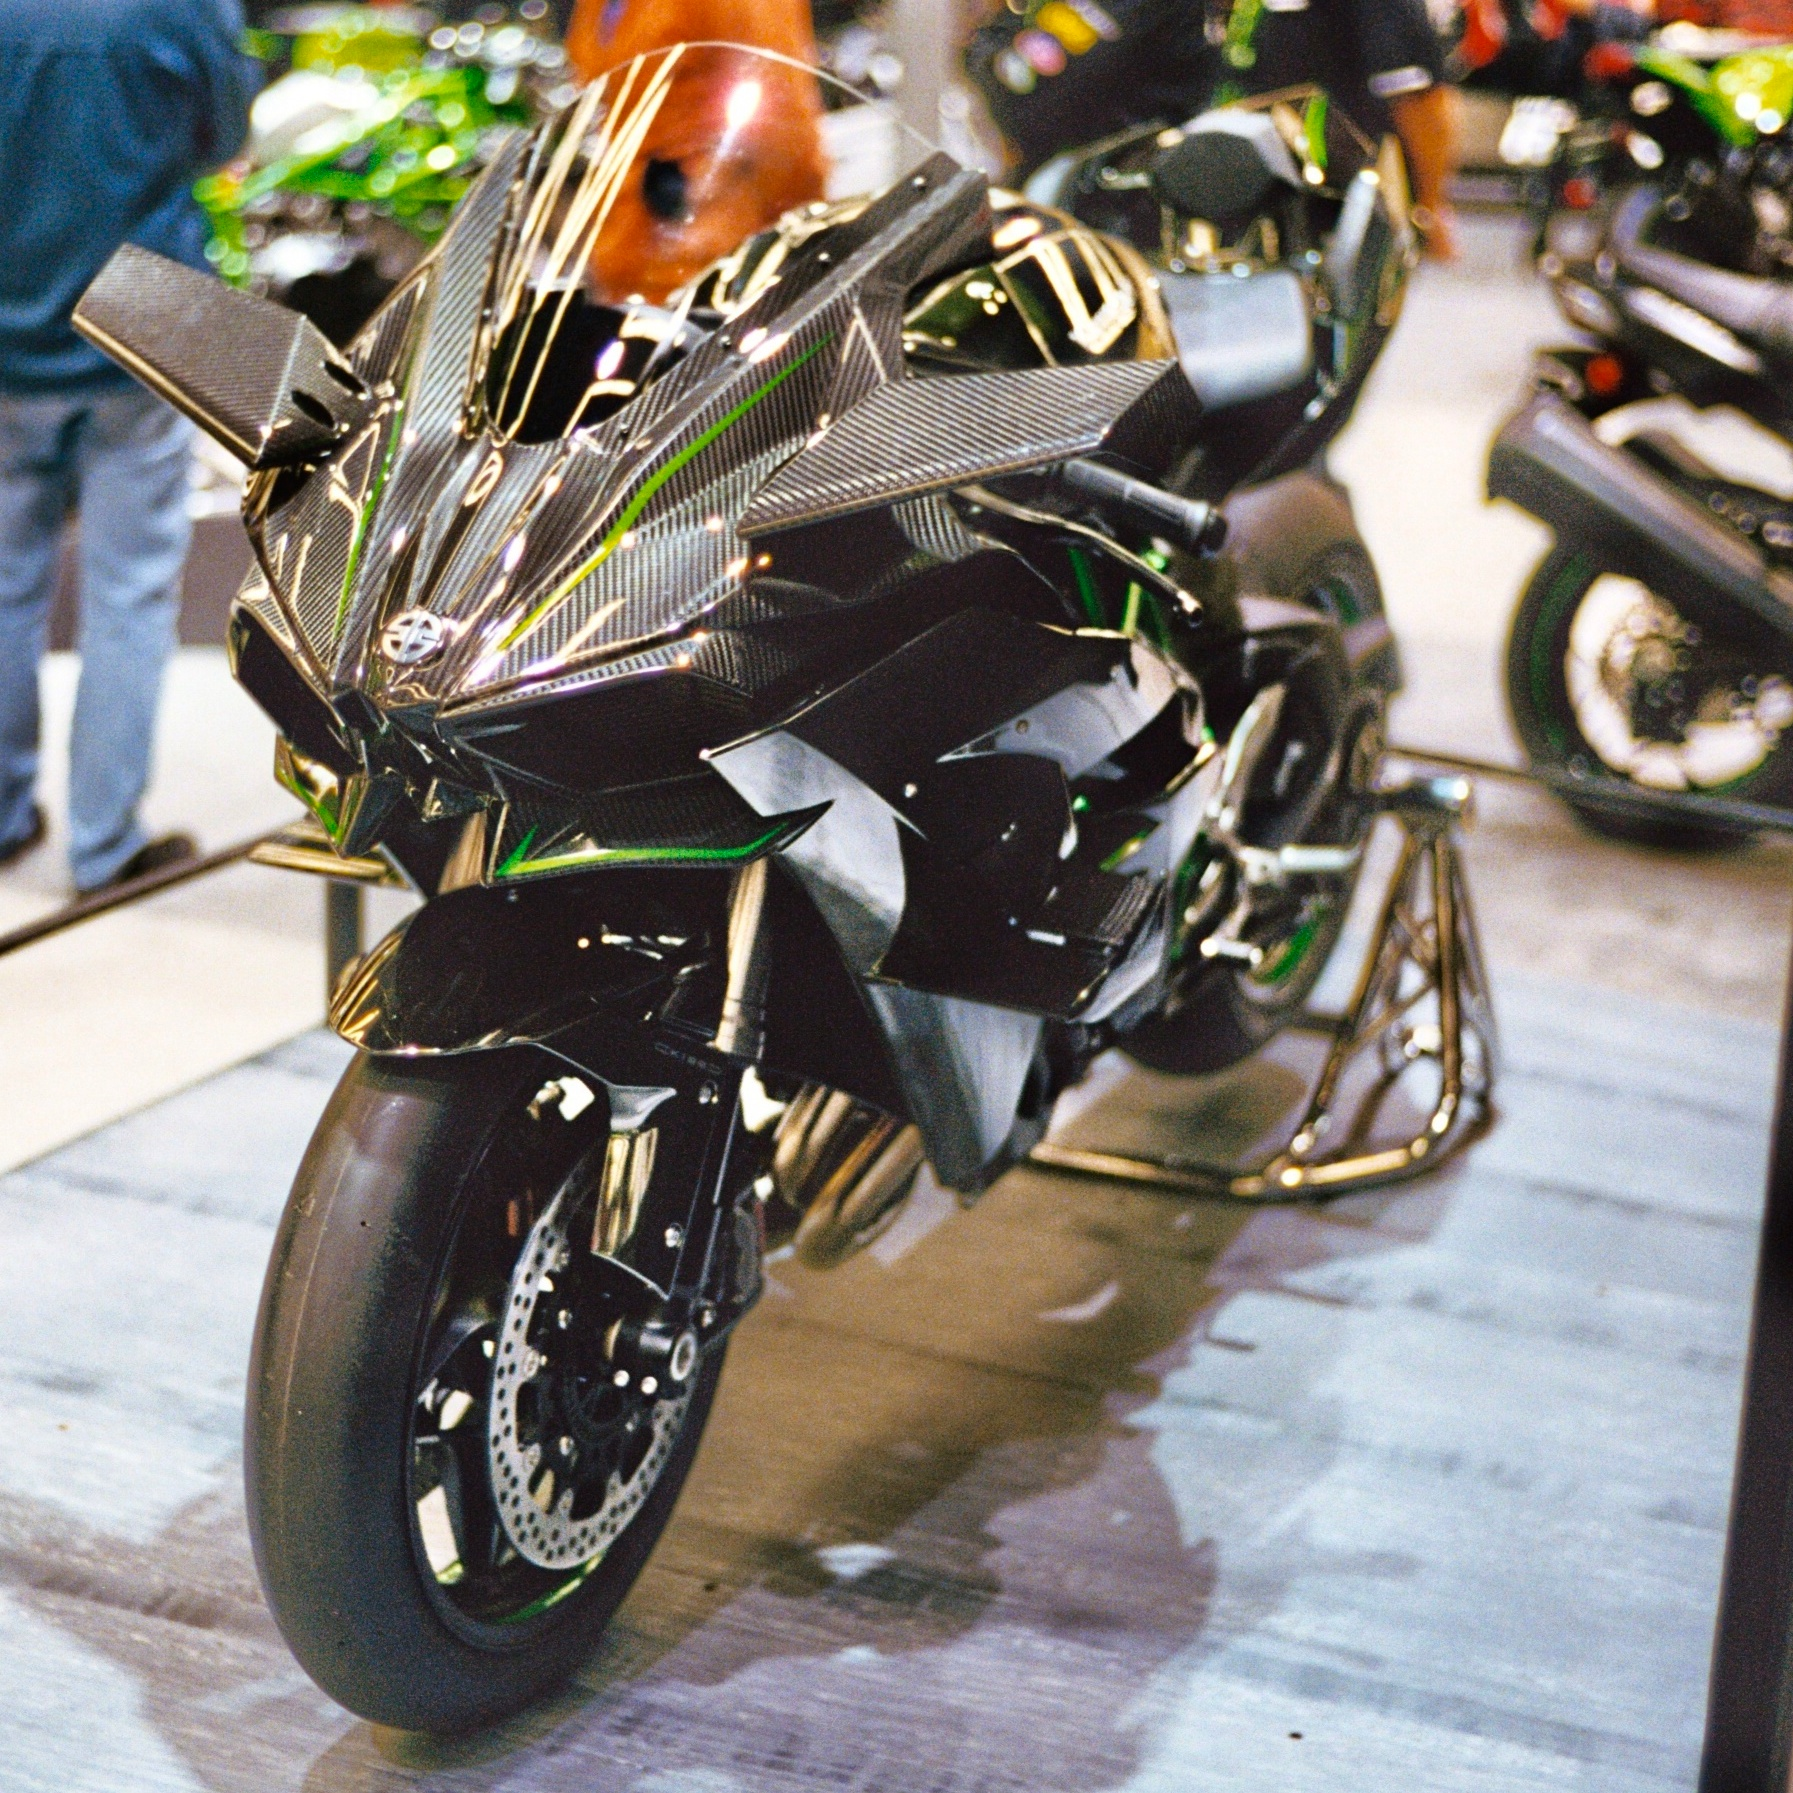 FileKawasaki Ninja H2R Front LeftJPG